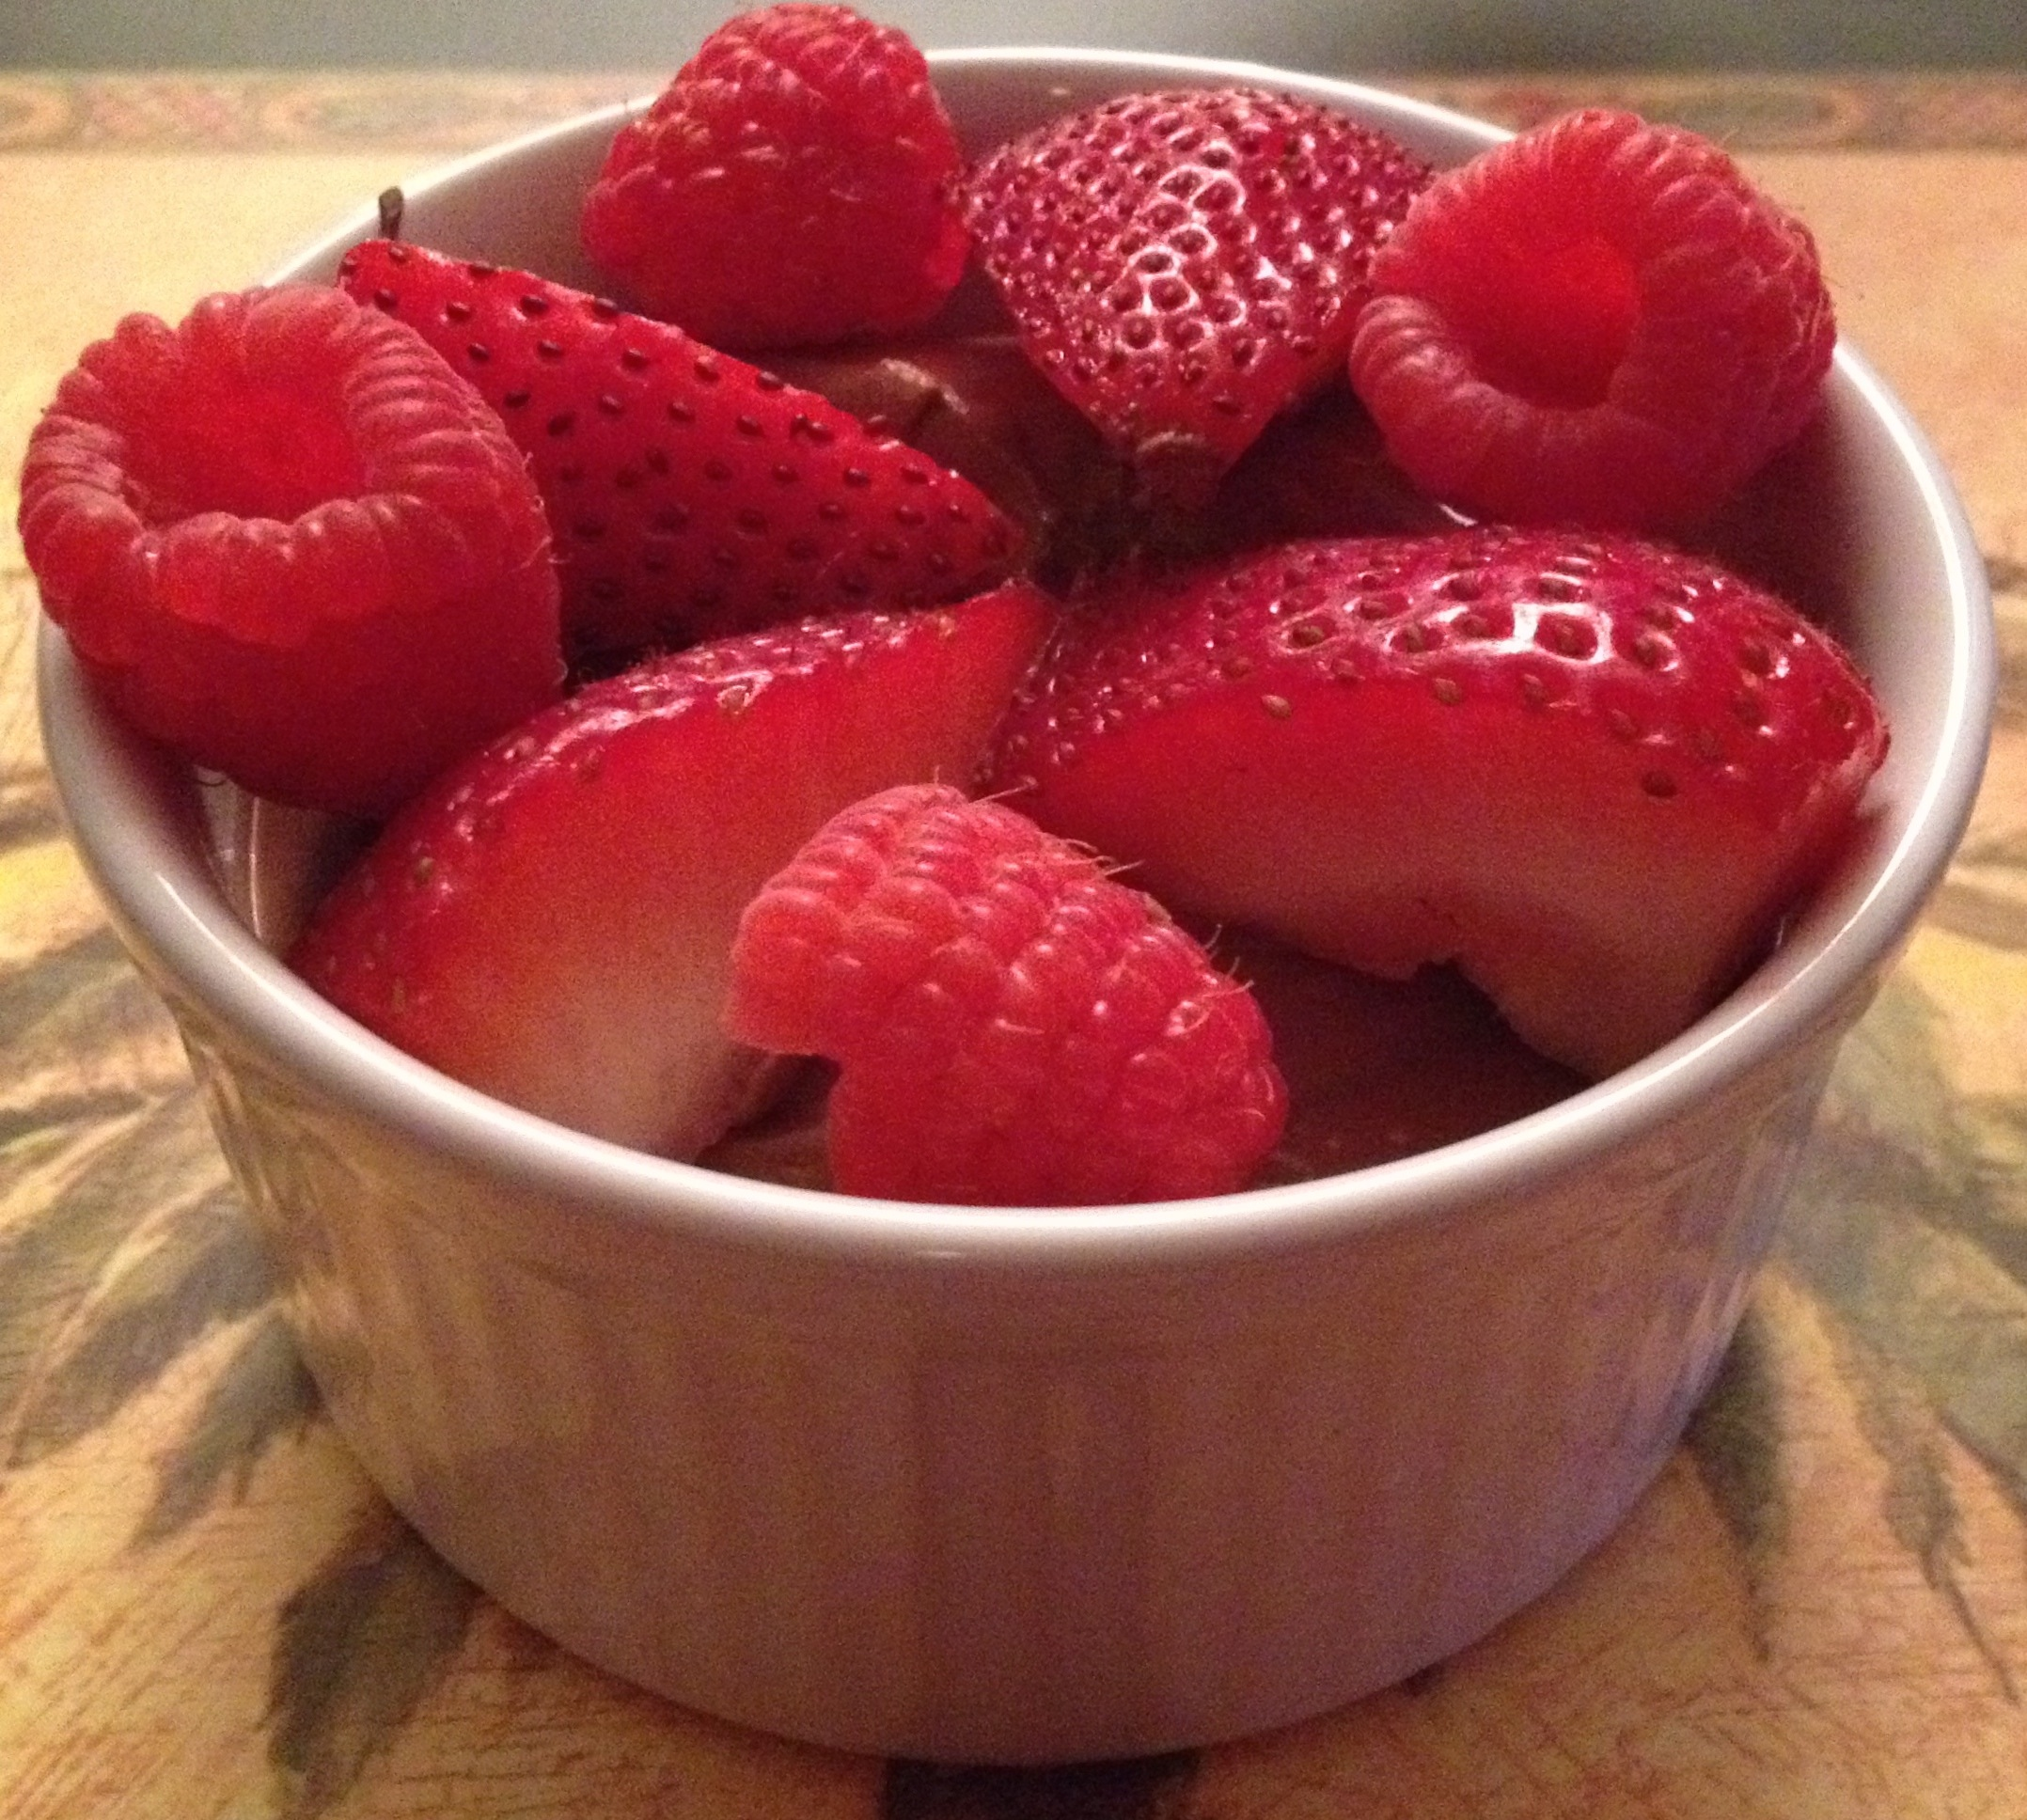 Chocolate mousse garnished with raspberries and strawberries